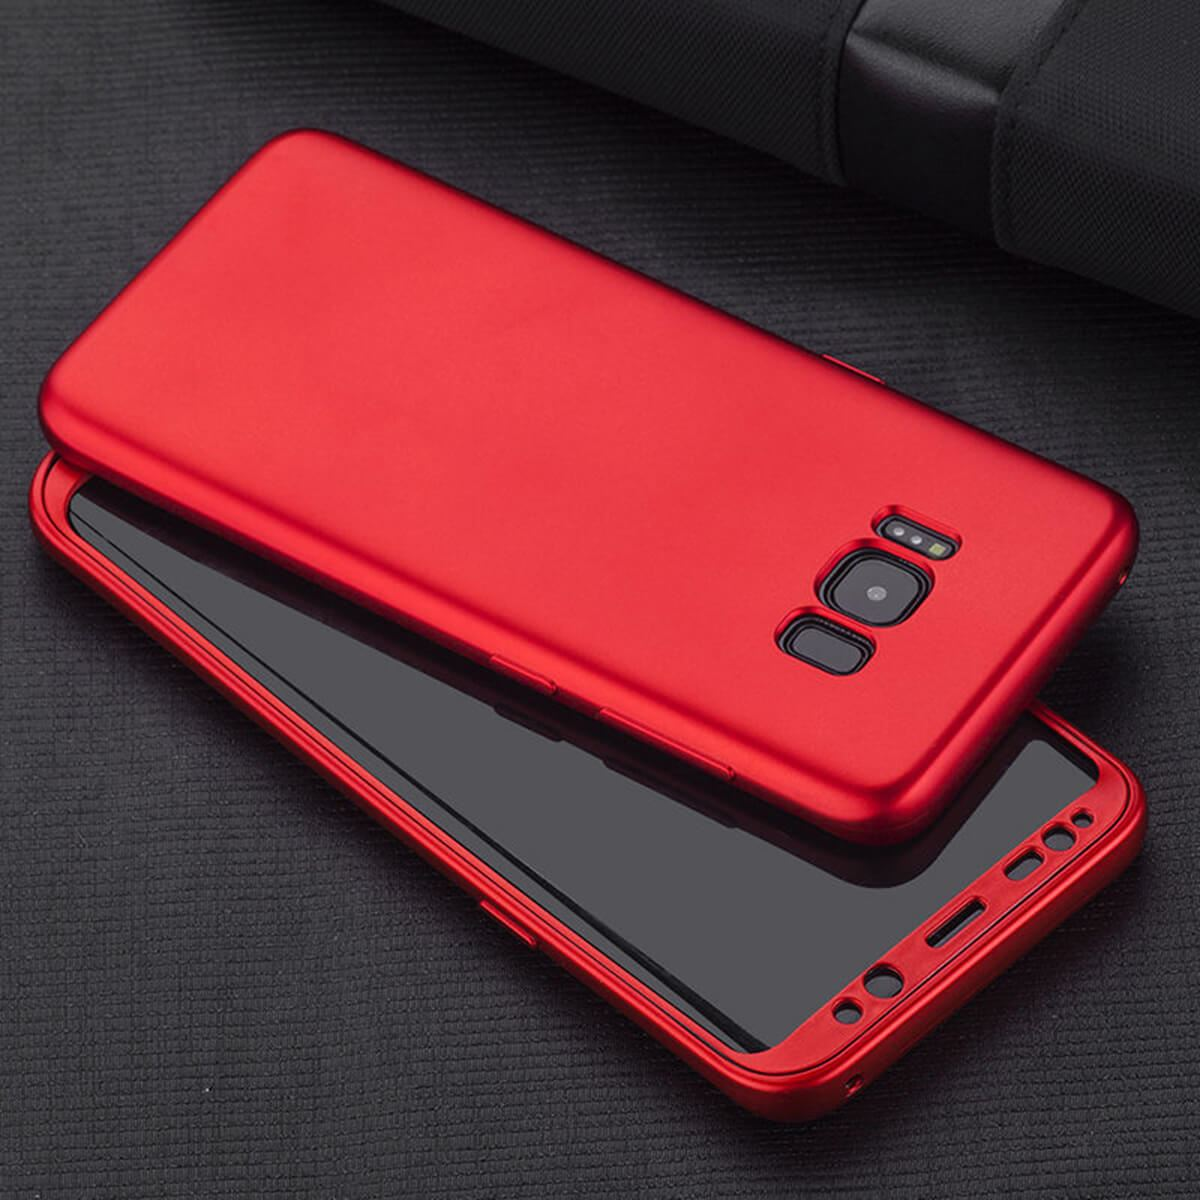 New-ShockProof-Hybrid-360-TPU-Thin-Case-Cover-For-Samsung-Galaxy-S7-edge-S8-S9 miniature 40